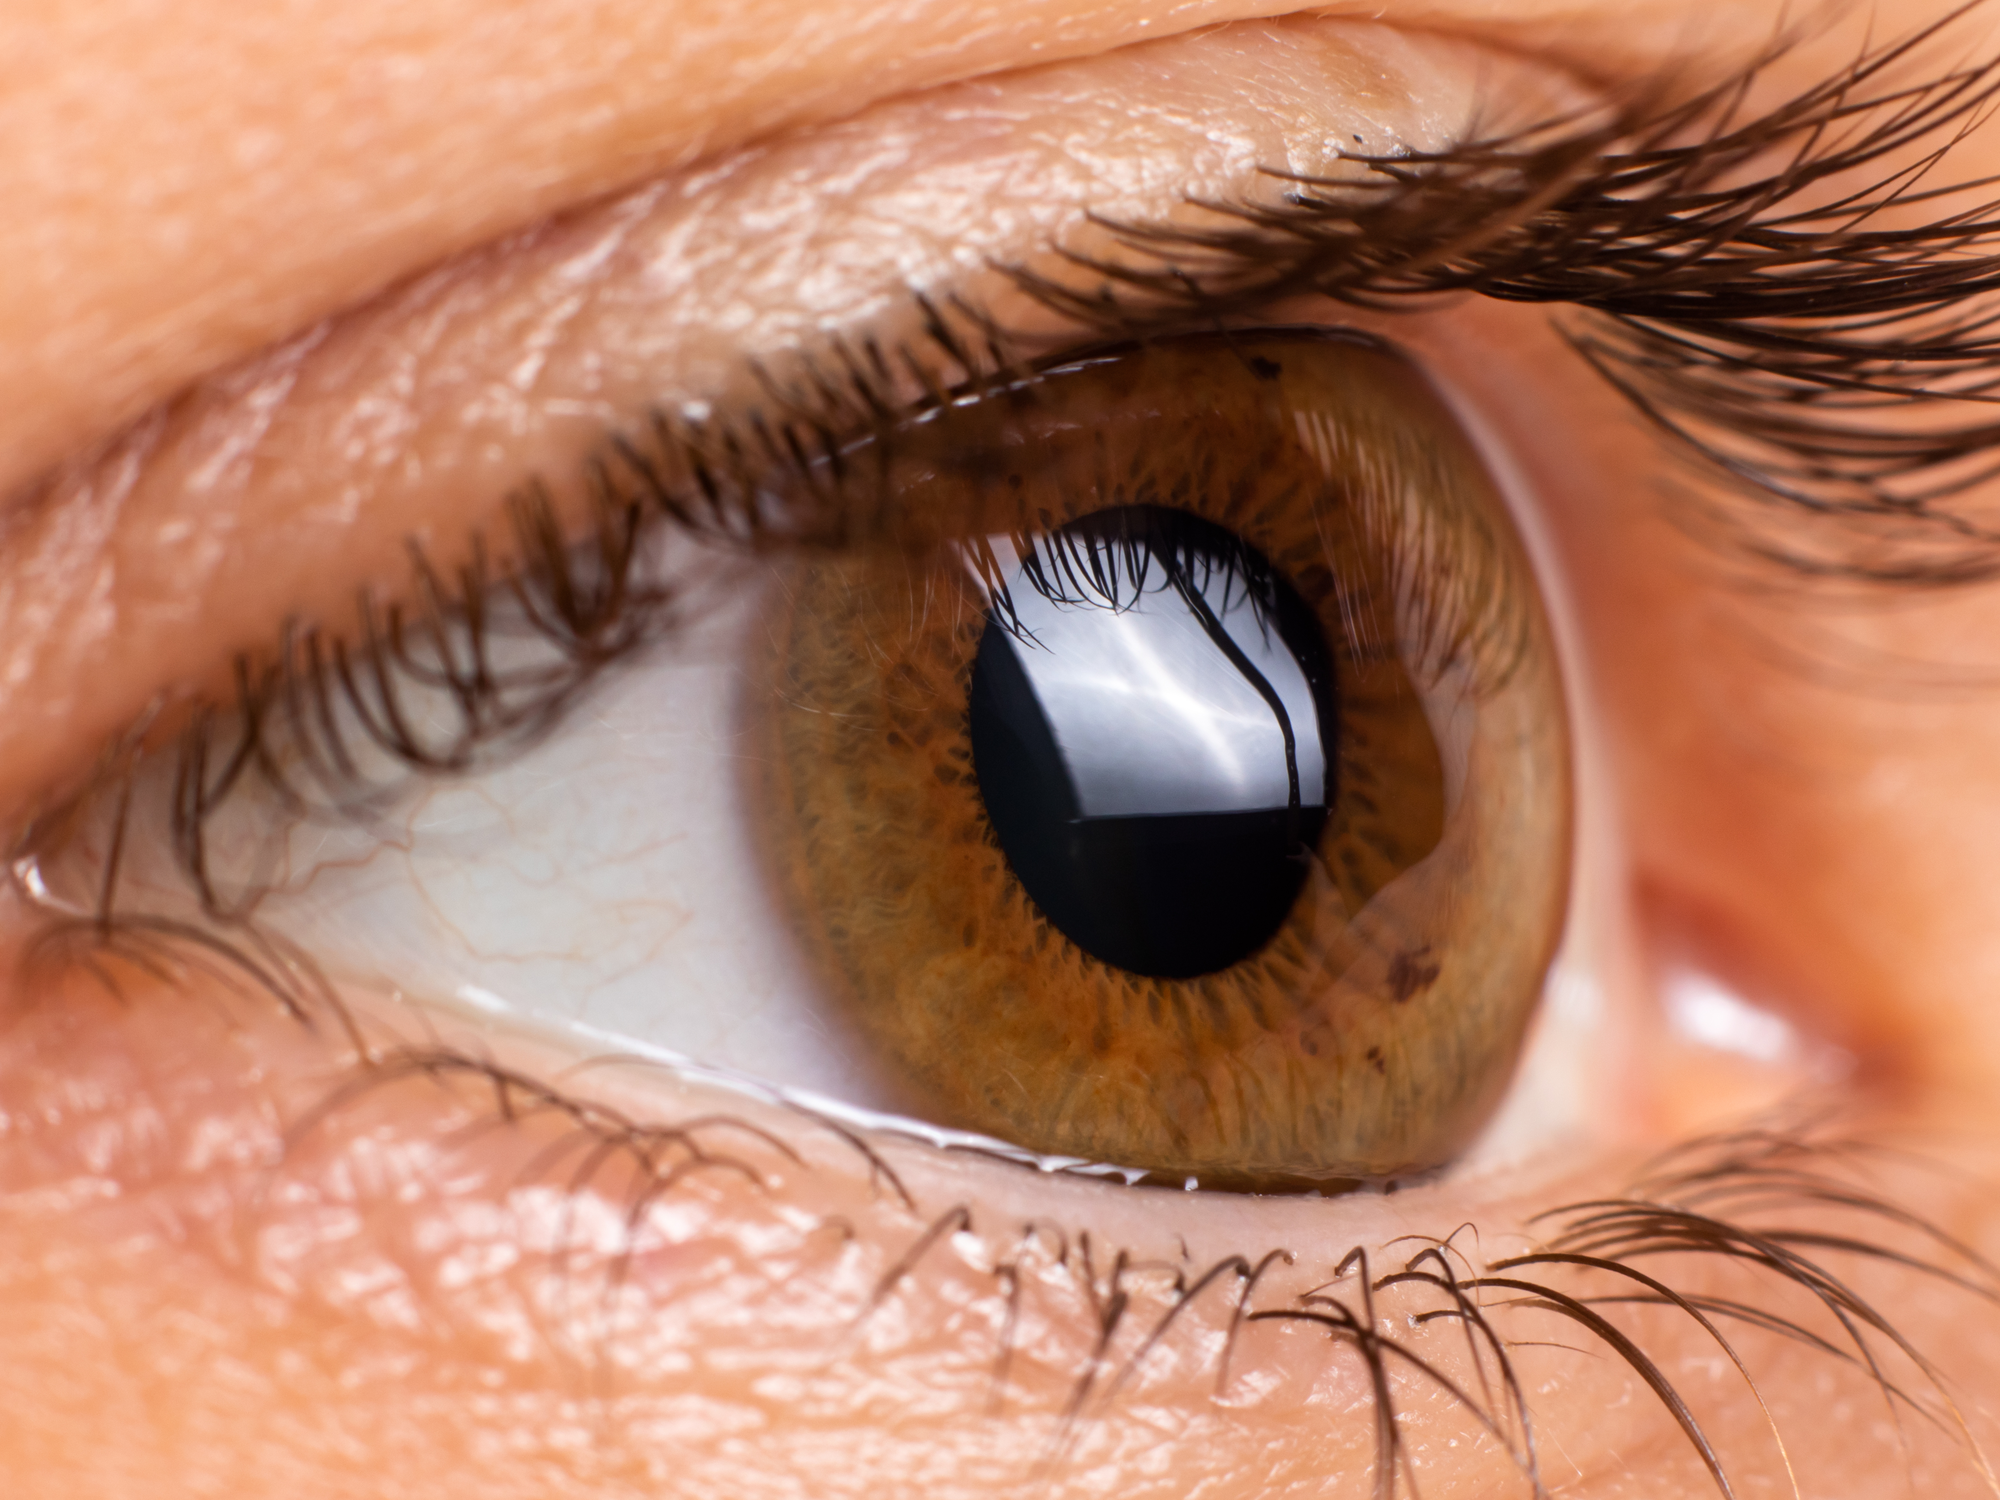 Candidates for a Corneal Transplant